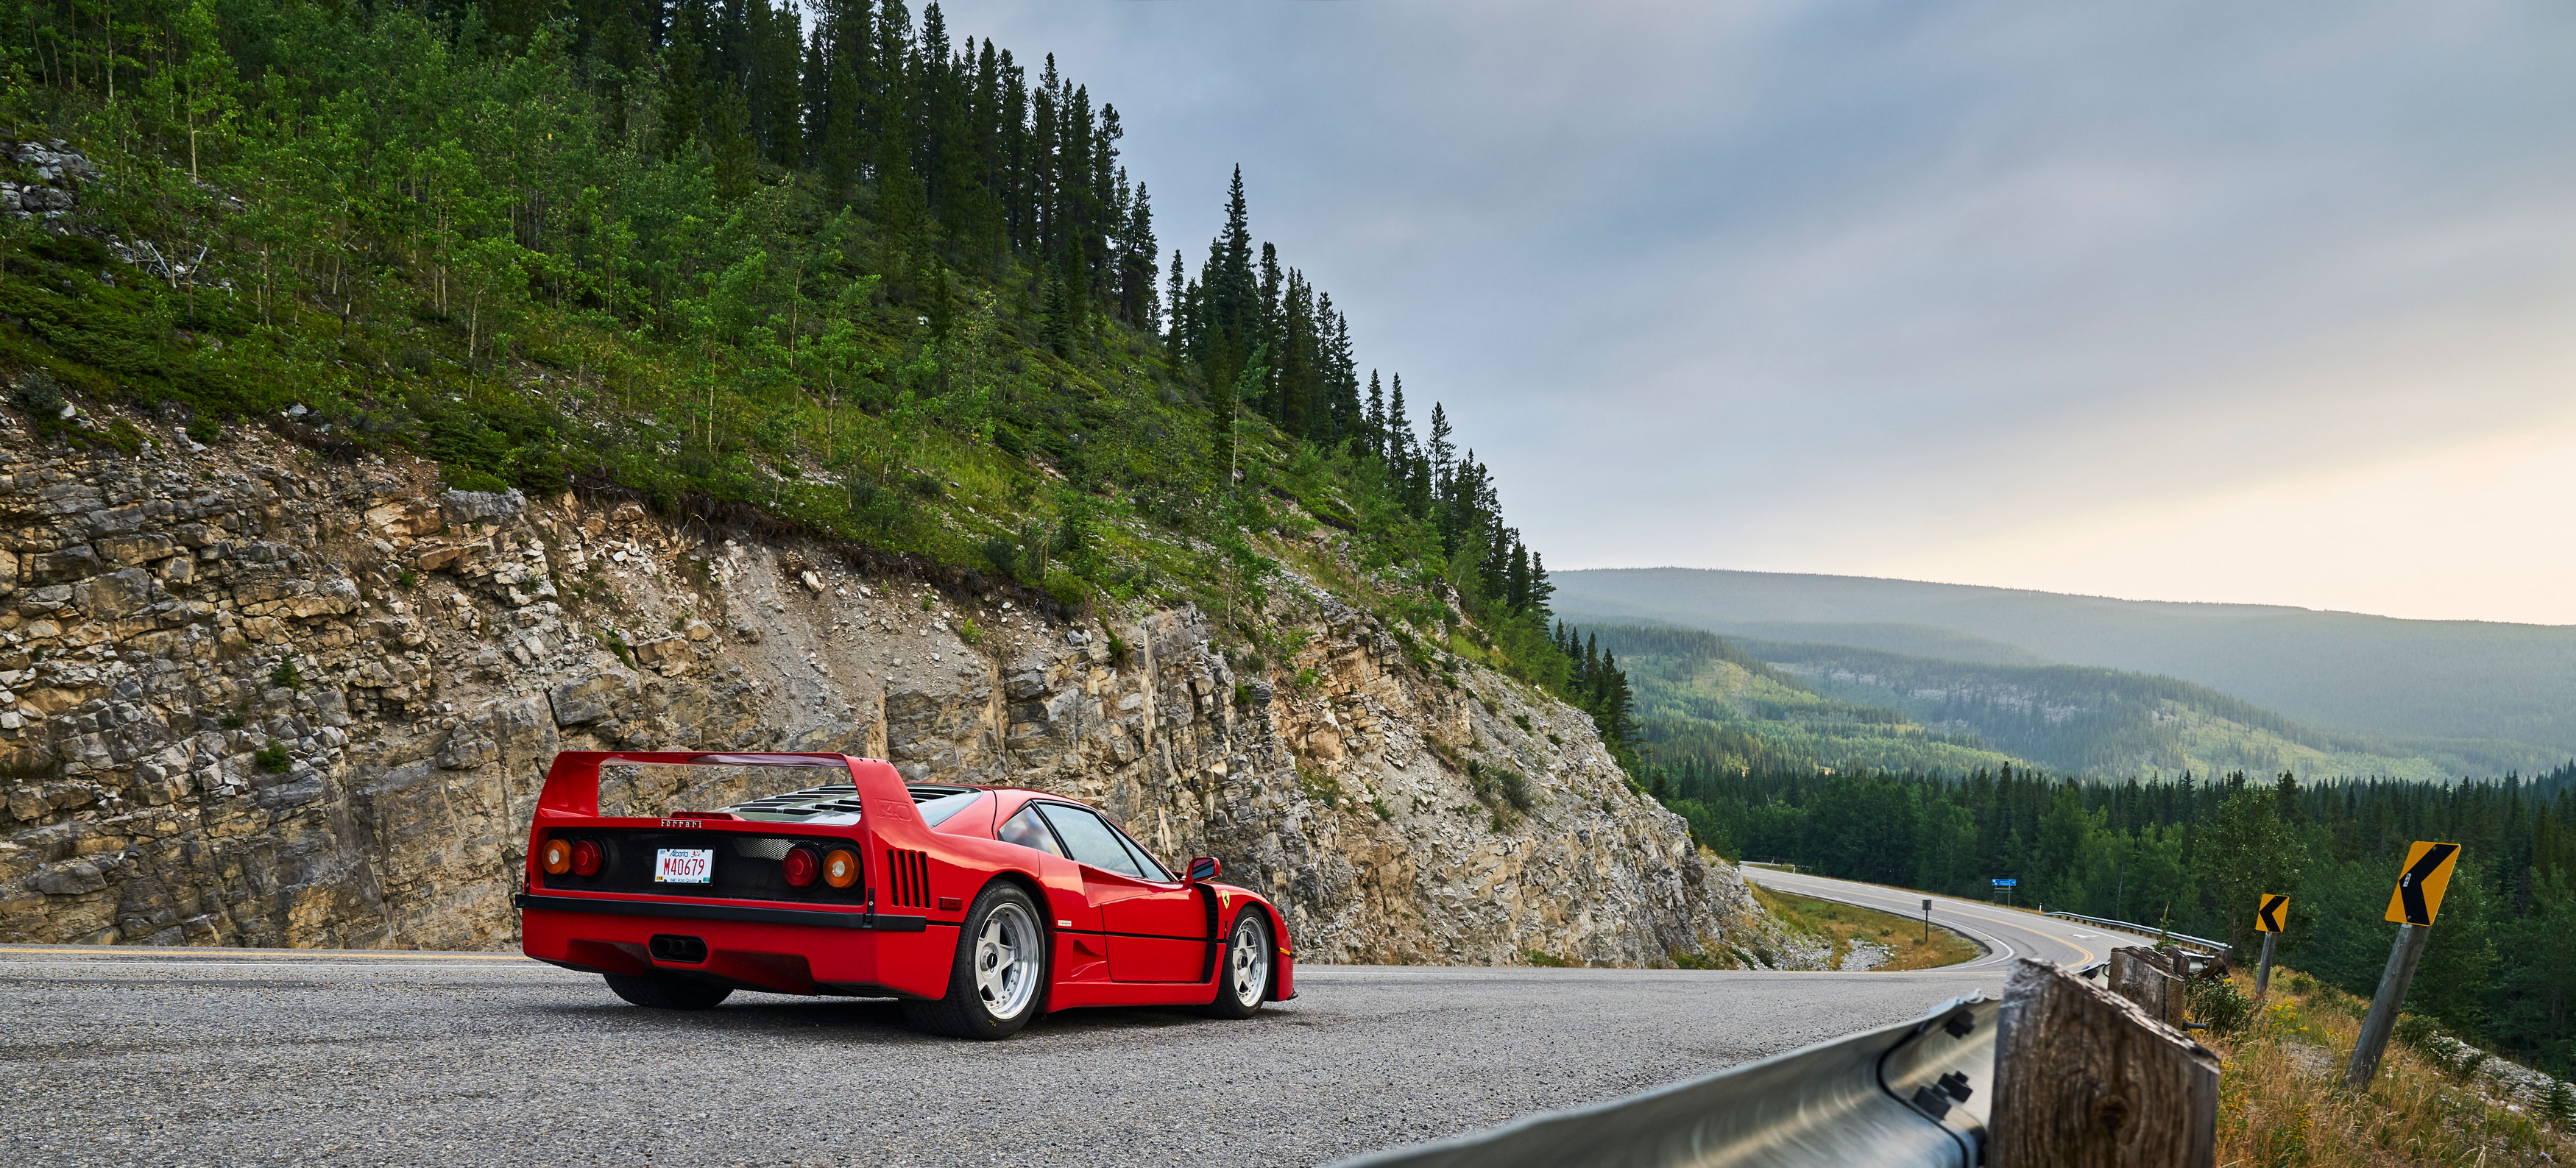 No mere straight-line rocket, the F40 is quite happy on a twisty road. Fat Pirelli P Zero tires help.